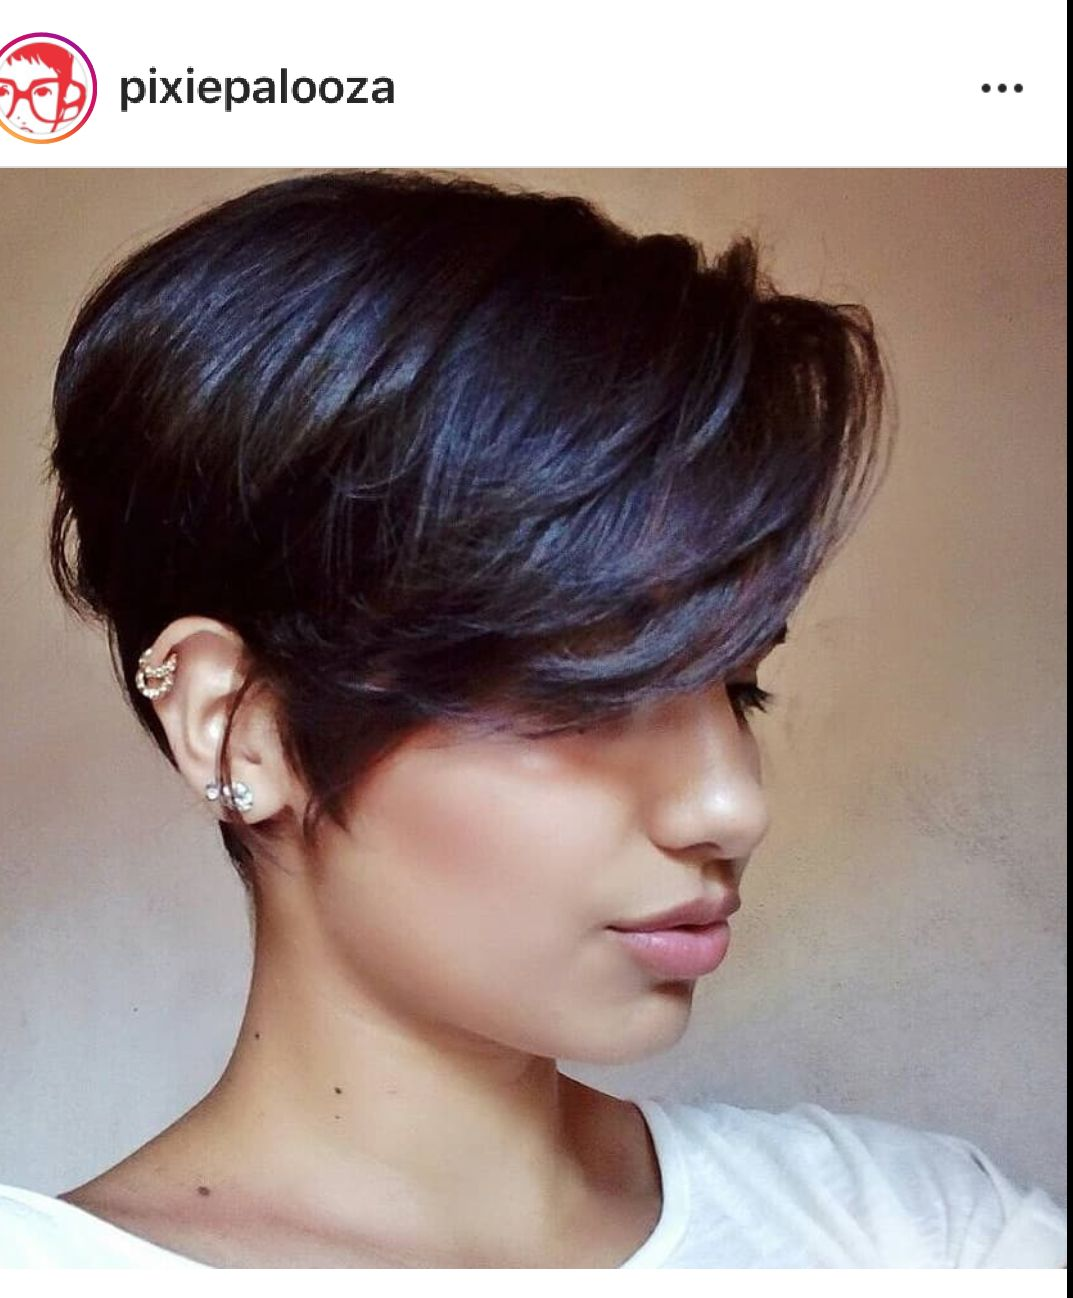 pin by sixtie pixie on hair in 2019 | stylish short hair